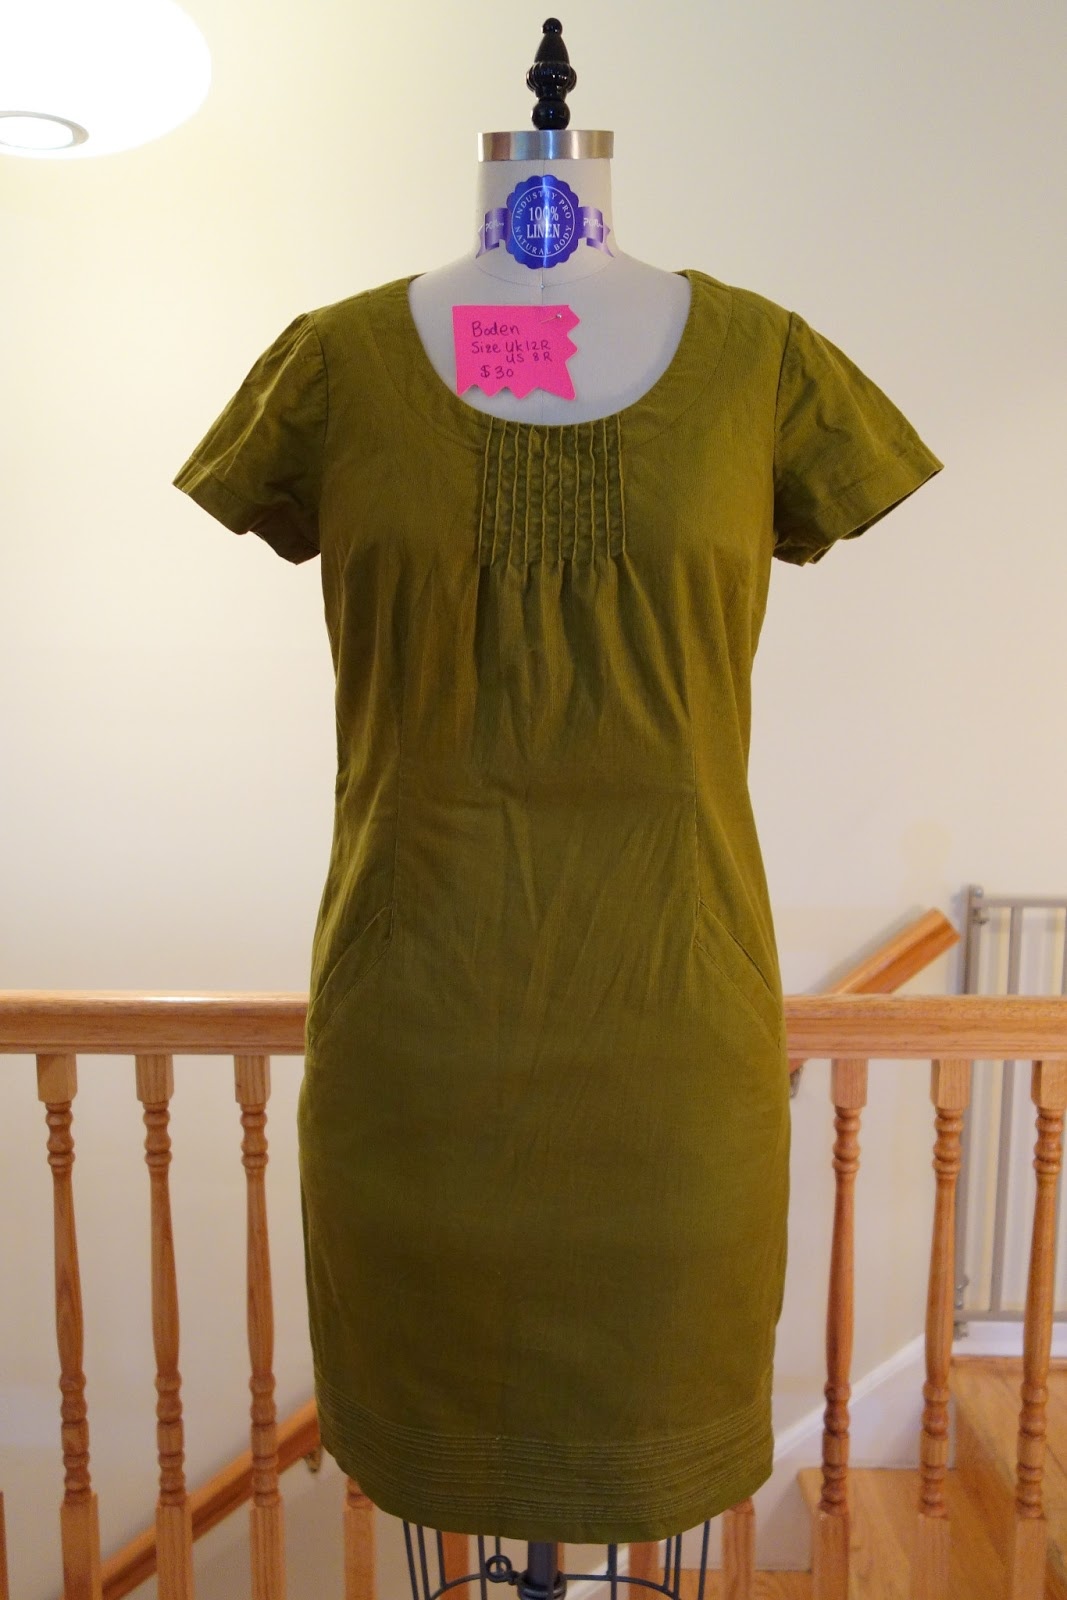 My superfluities j crew boden euc clothing for sale for Boden clothing